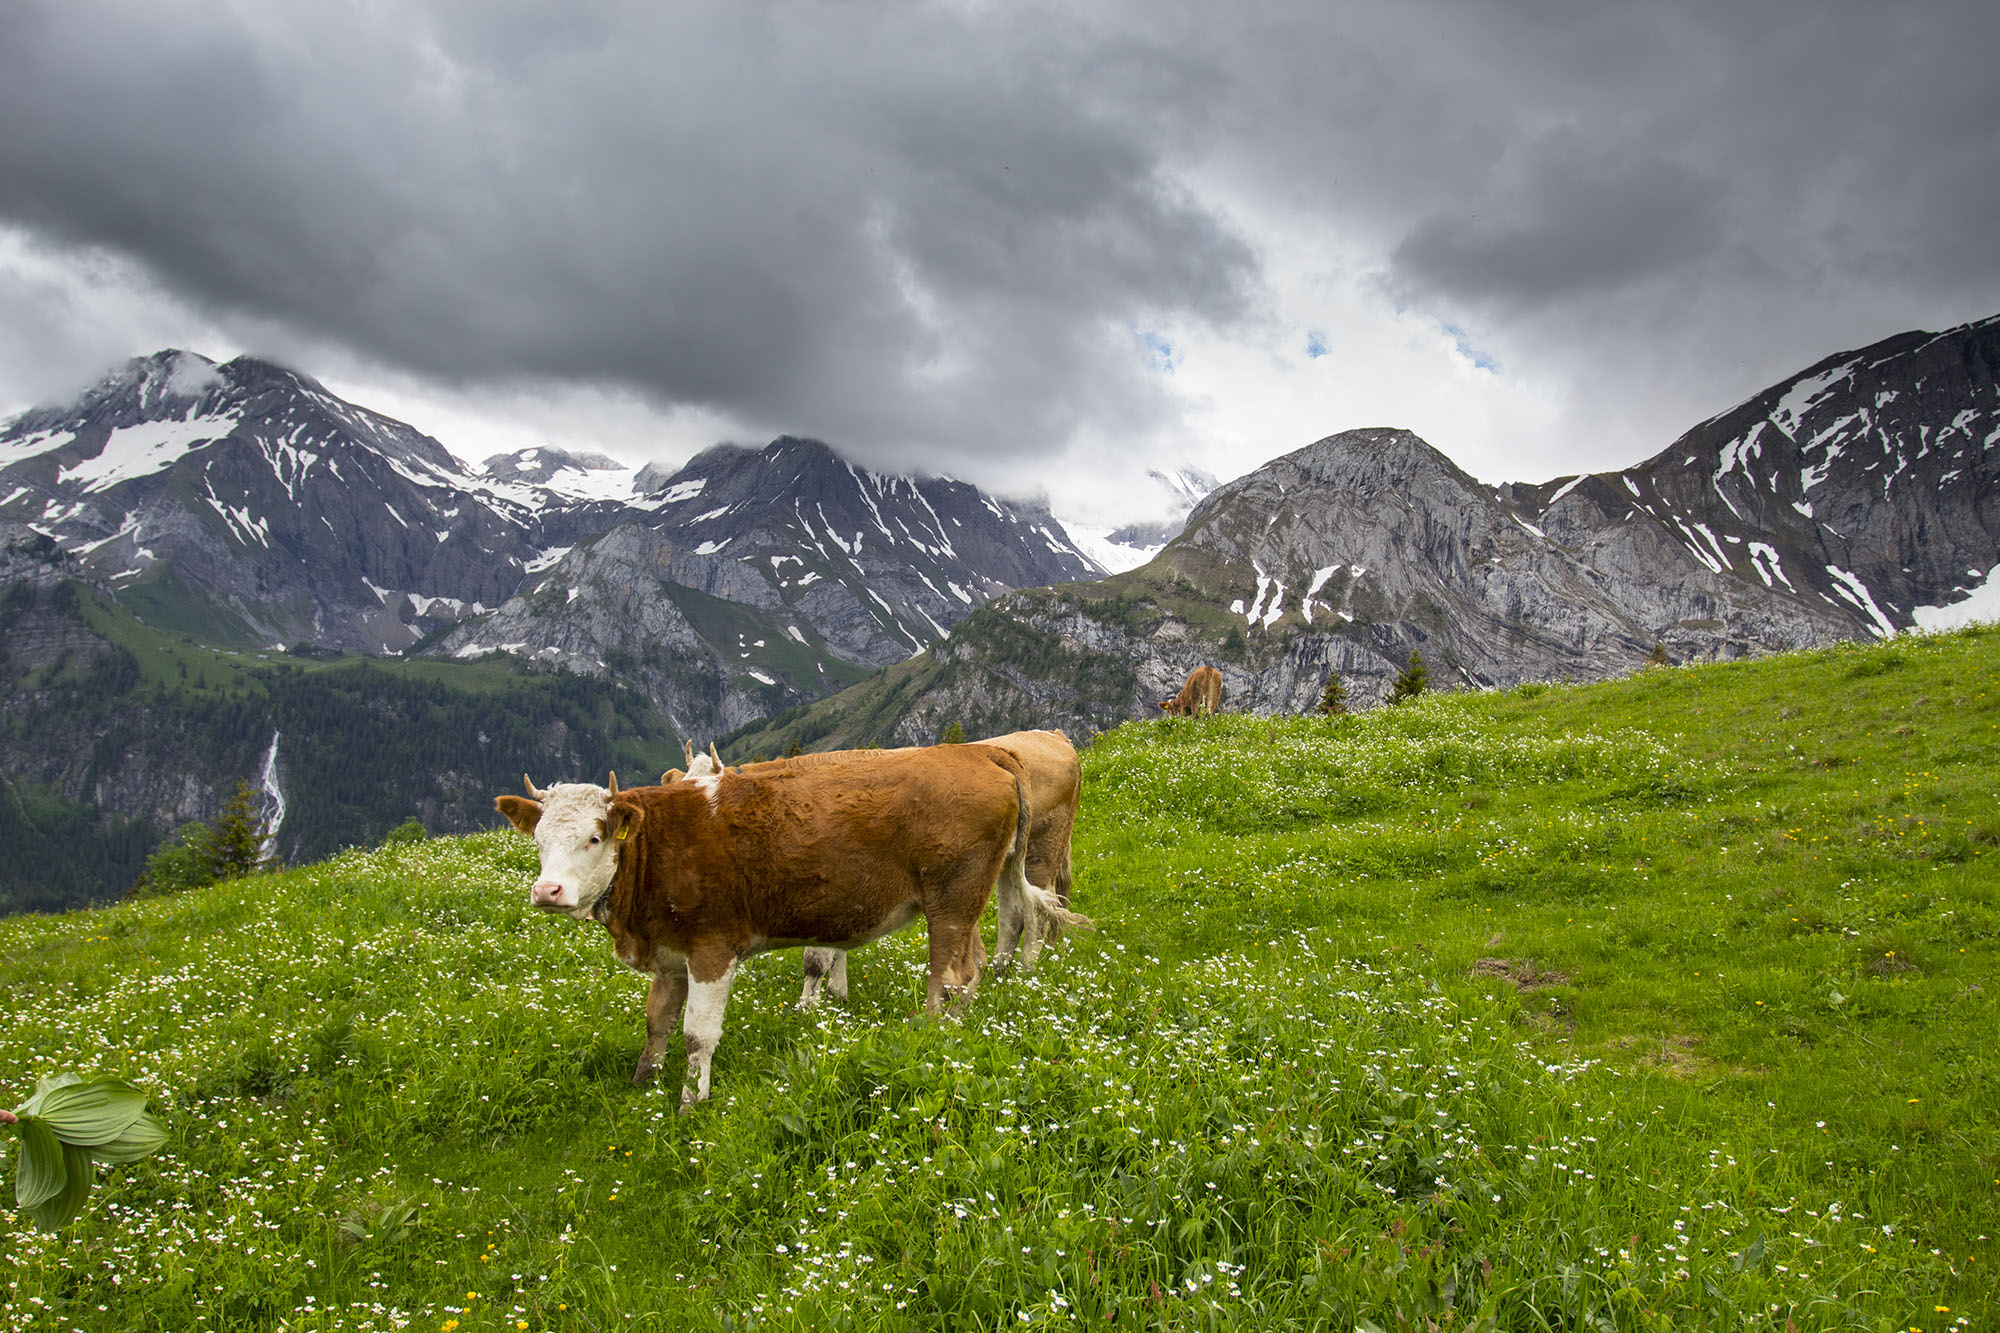 A cow in the mountains of Gstaad Switzerland